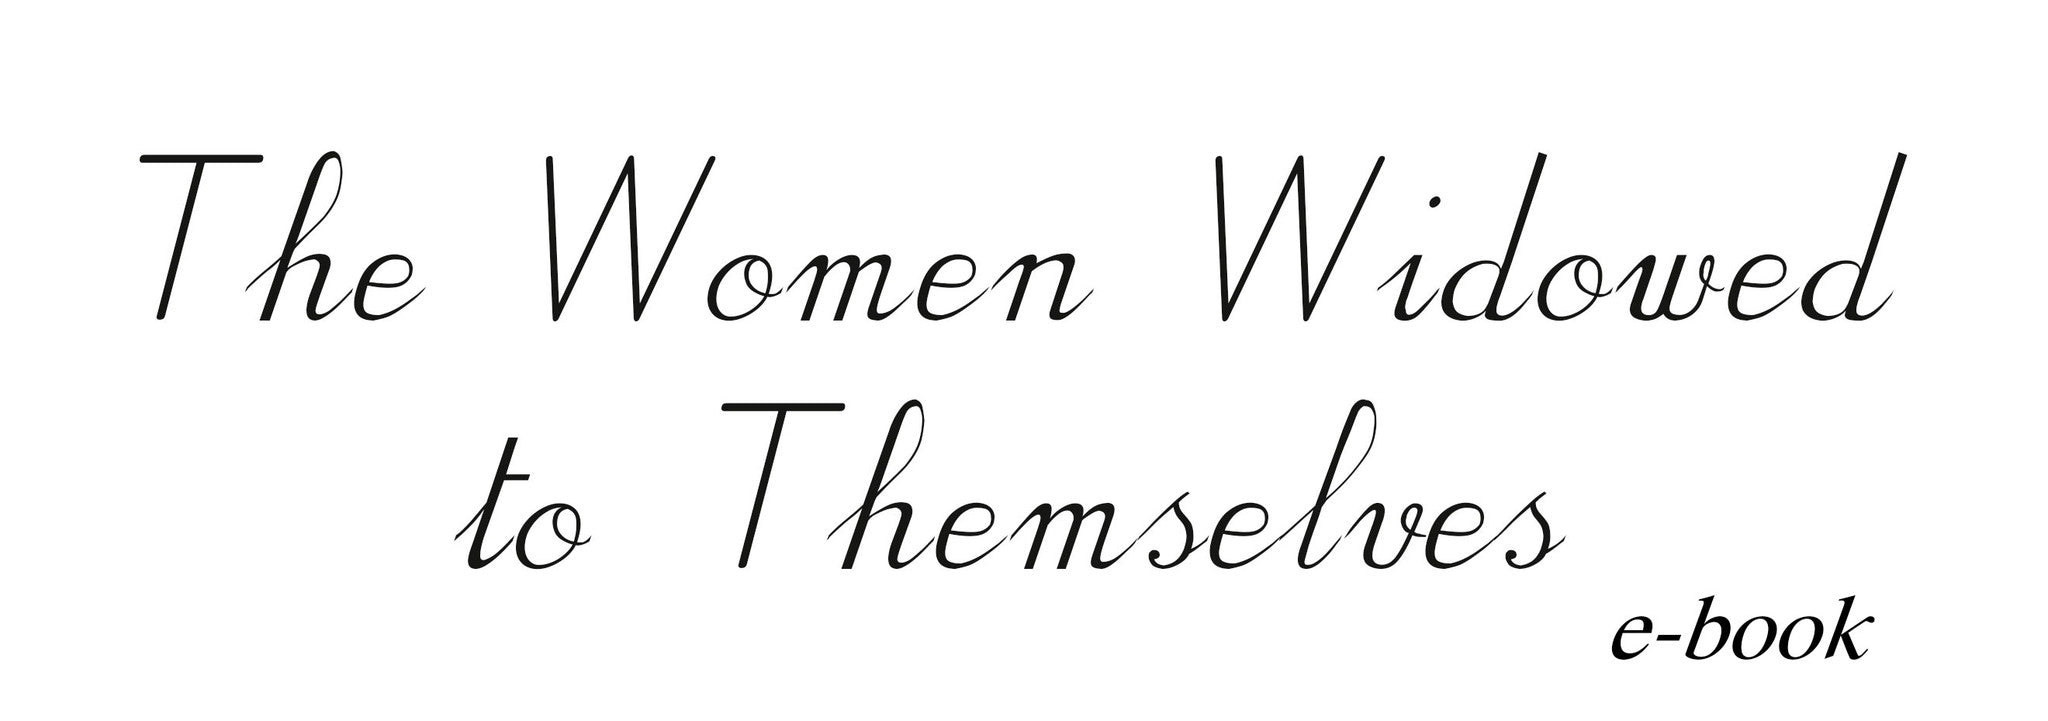 E-BOOK: The Women Widowed to Themselves